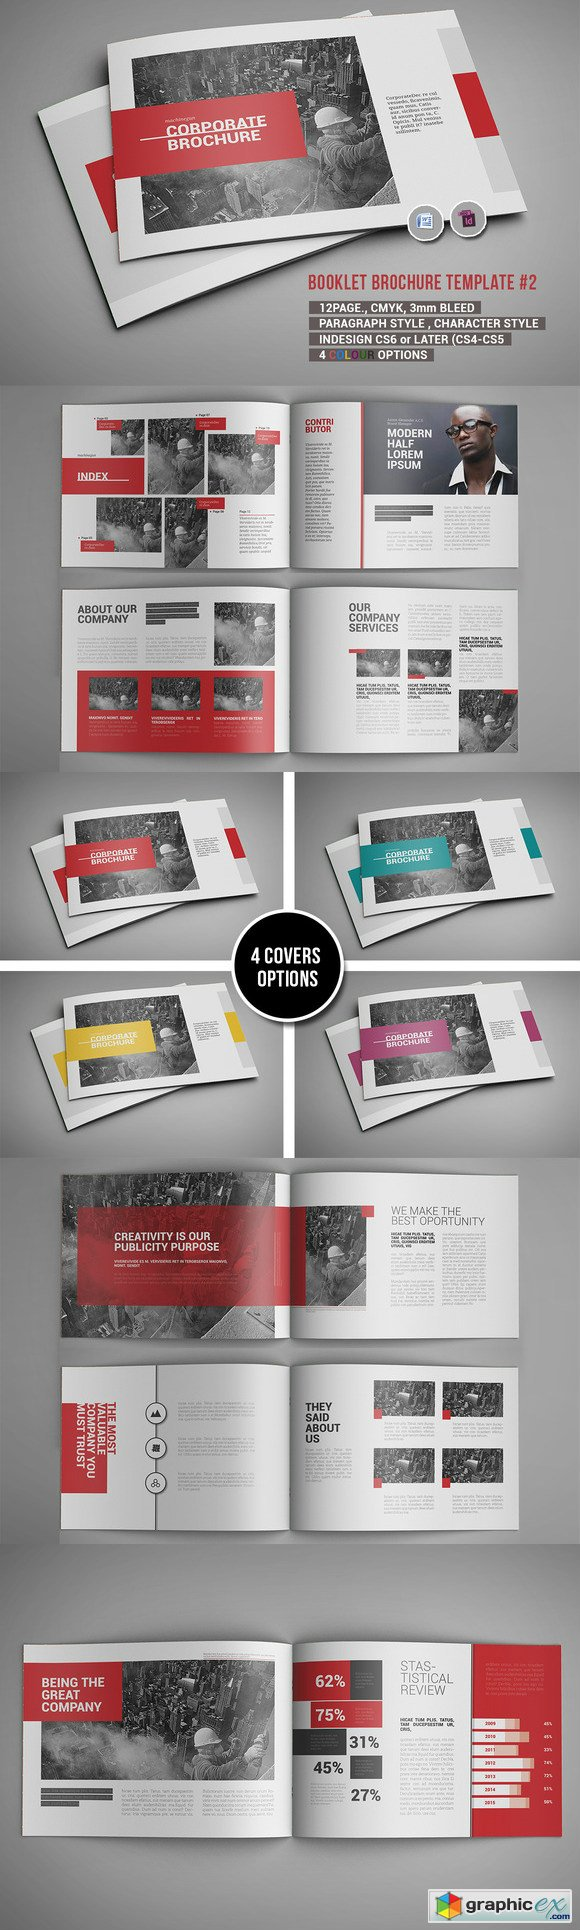 Booklet Brochure Template #2